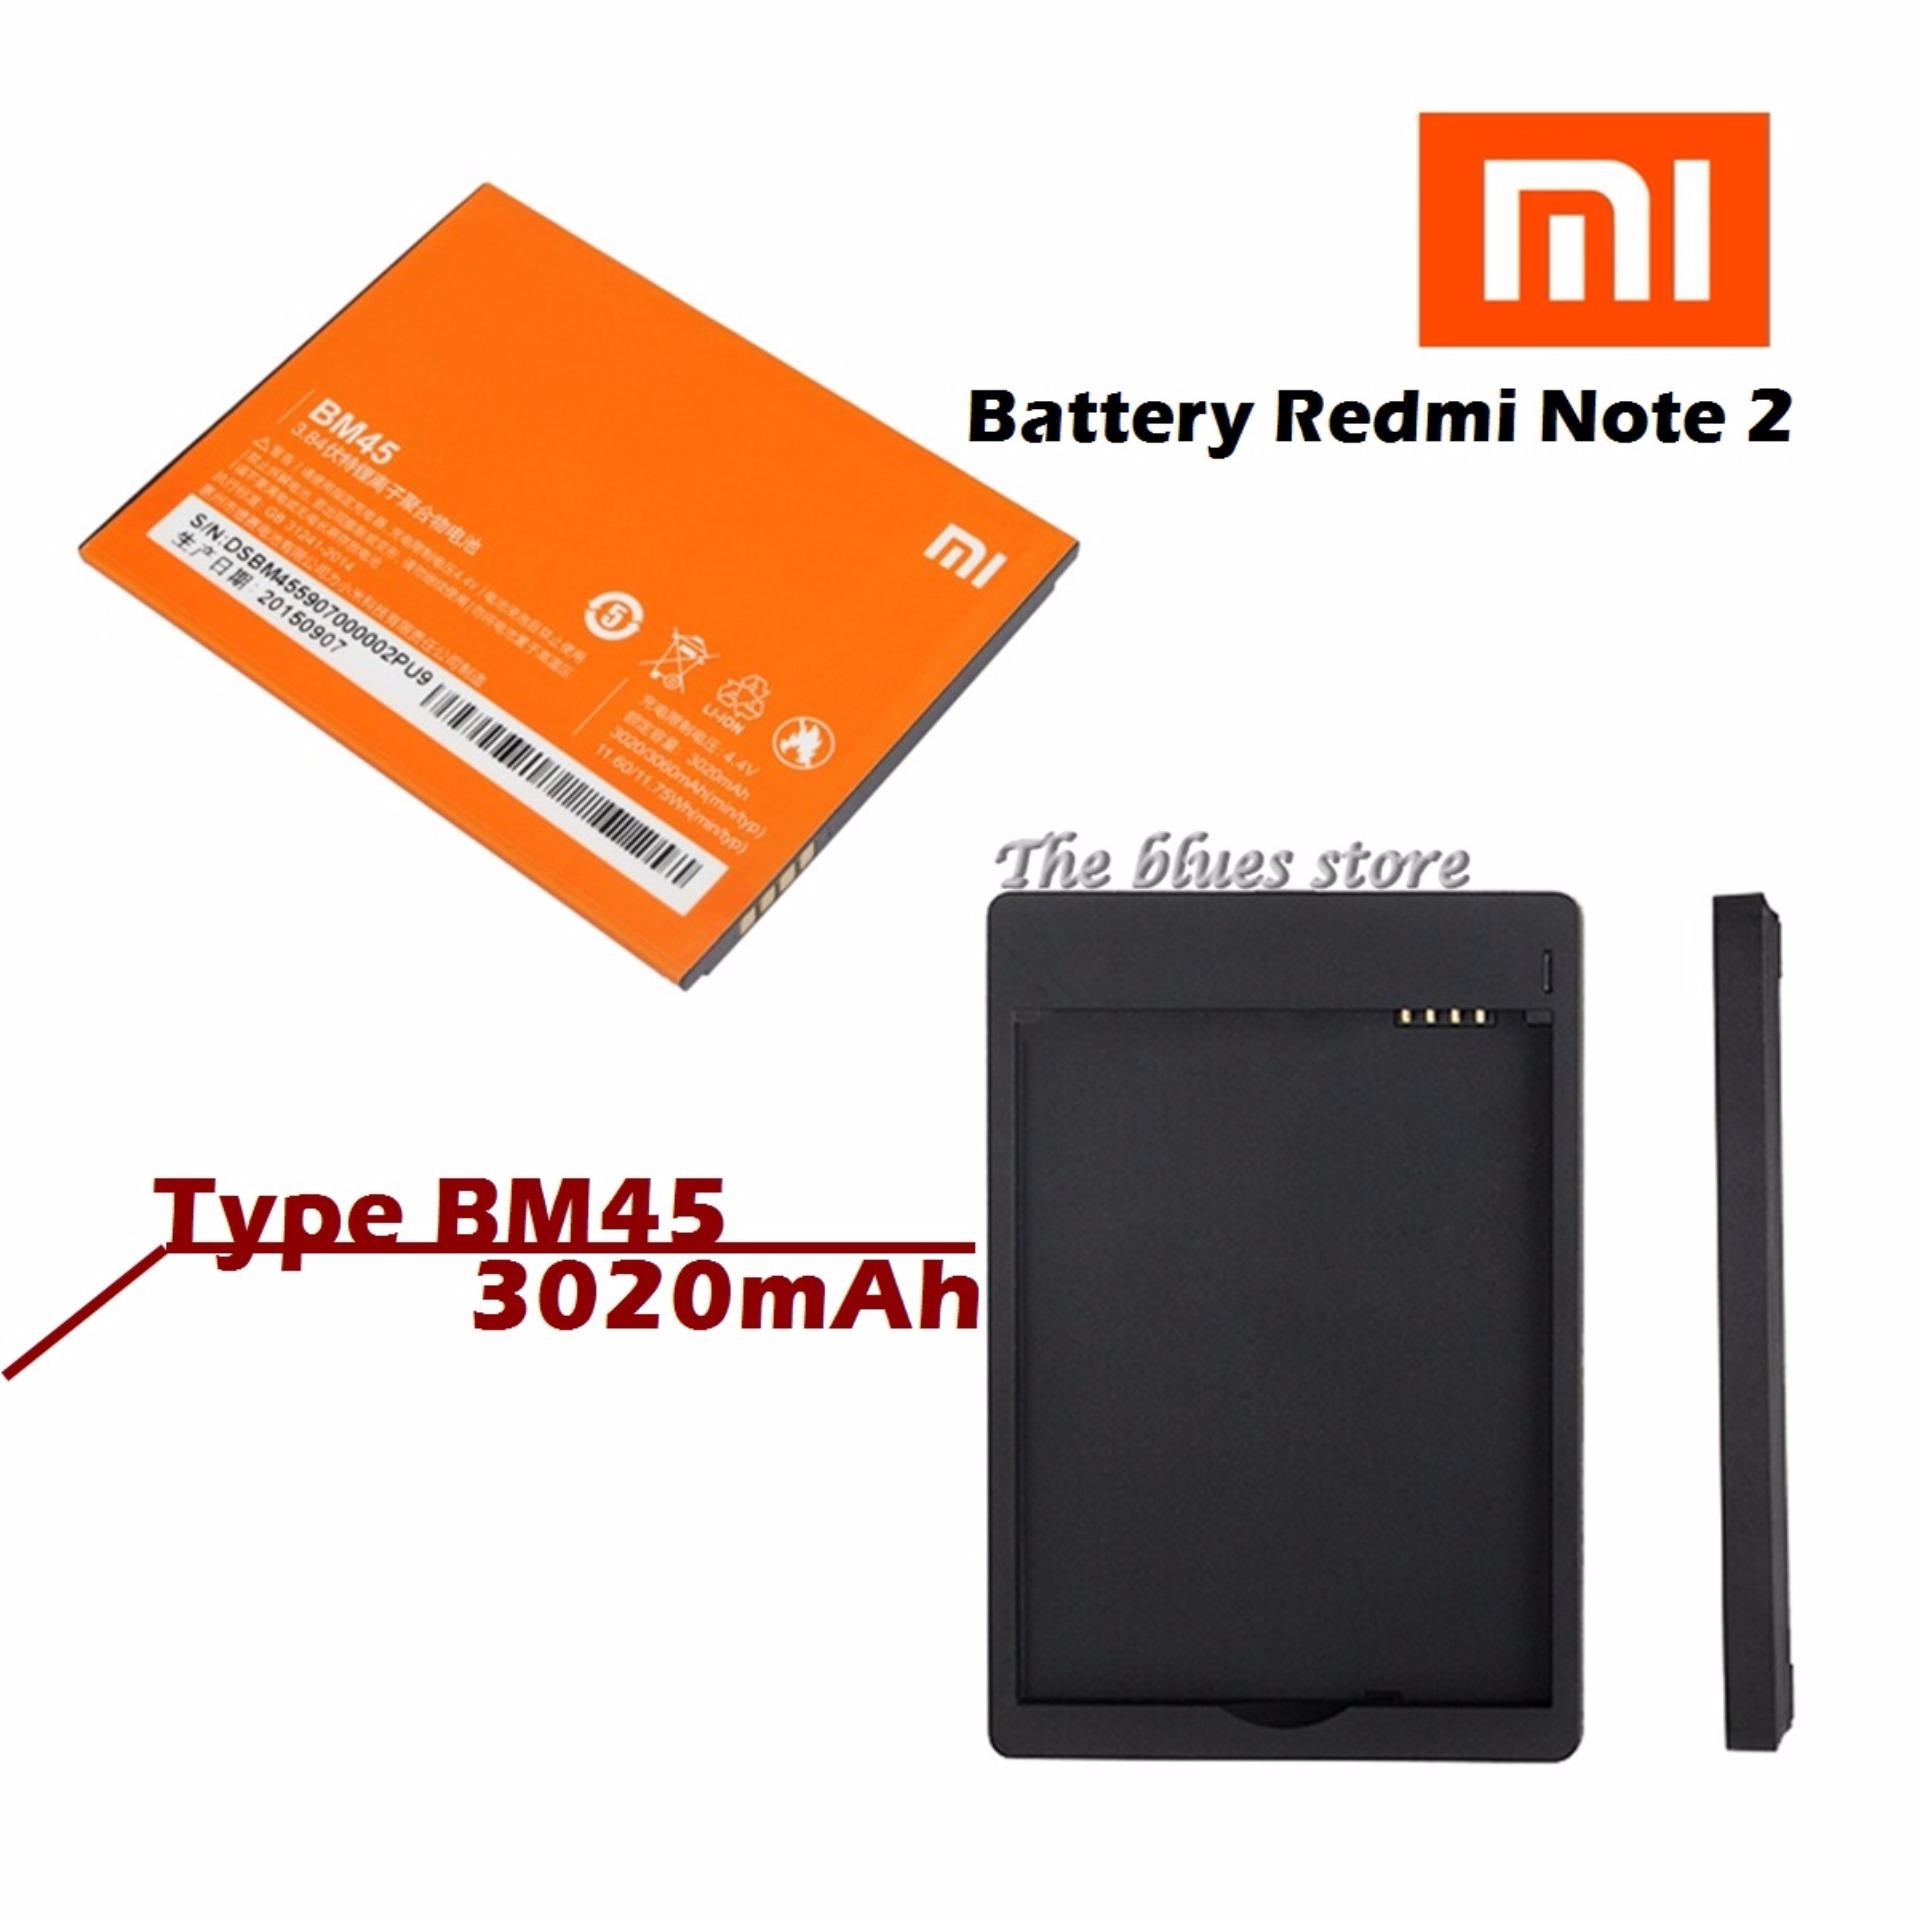 ... Xiaomi Baterai BM45 3020 mAh Battery For Redmi Note 2 + Dekstop - Original ...